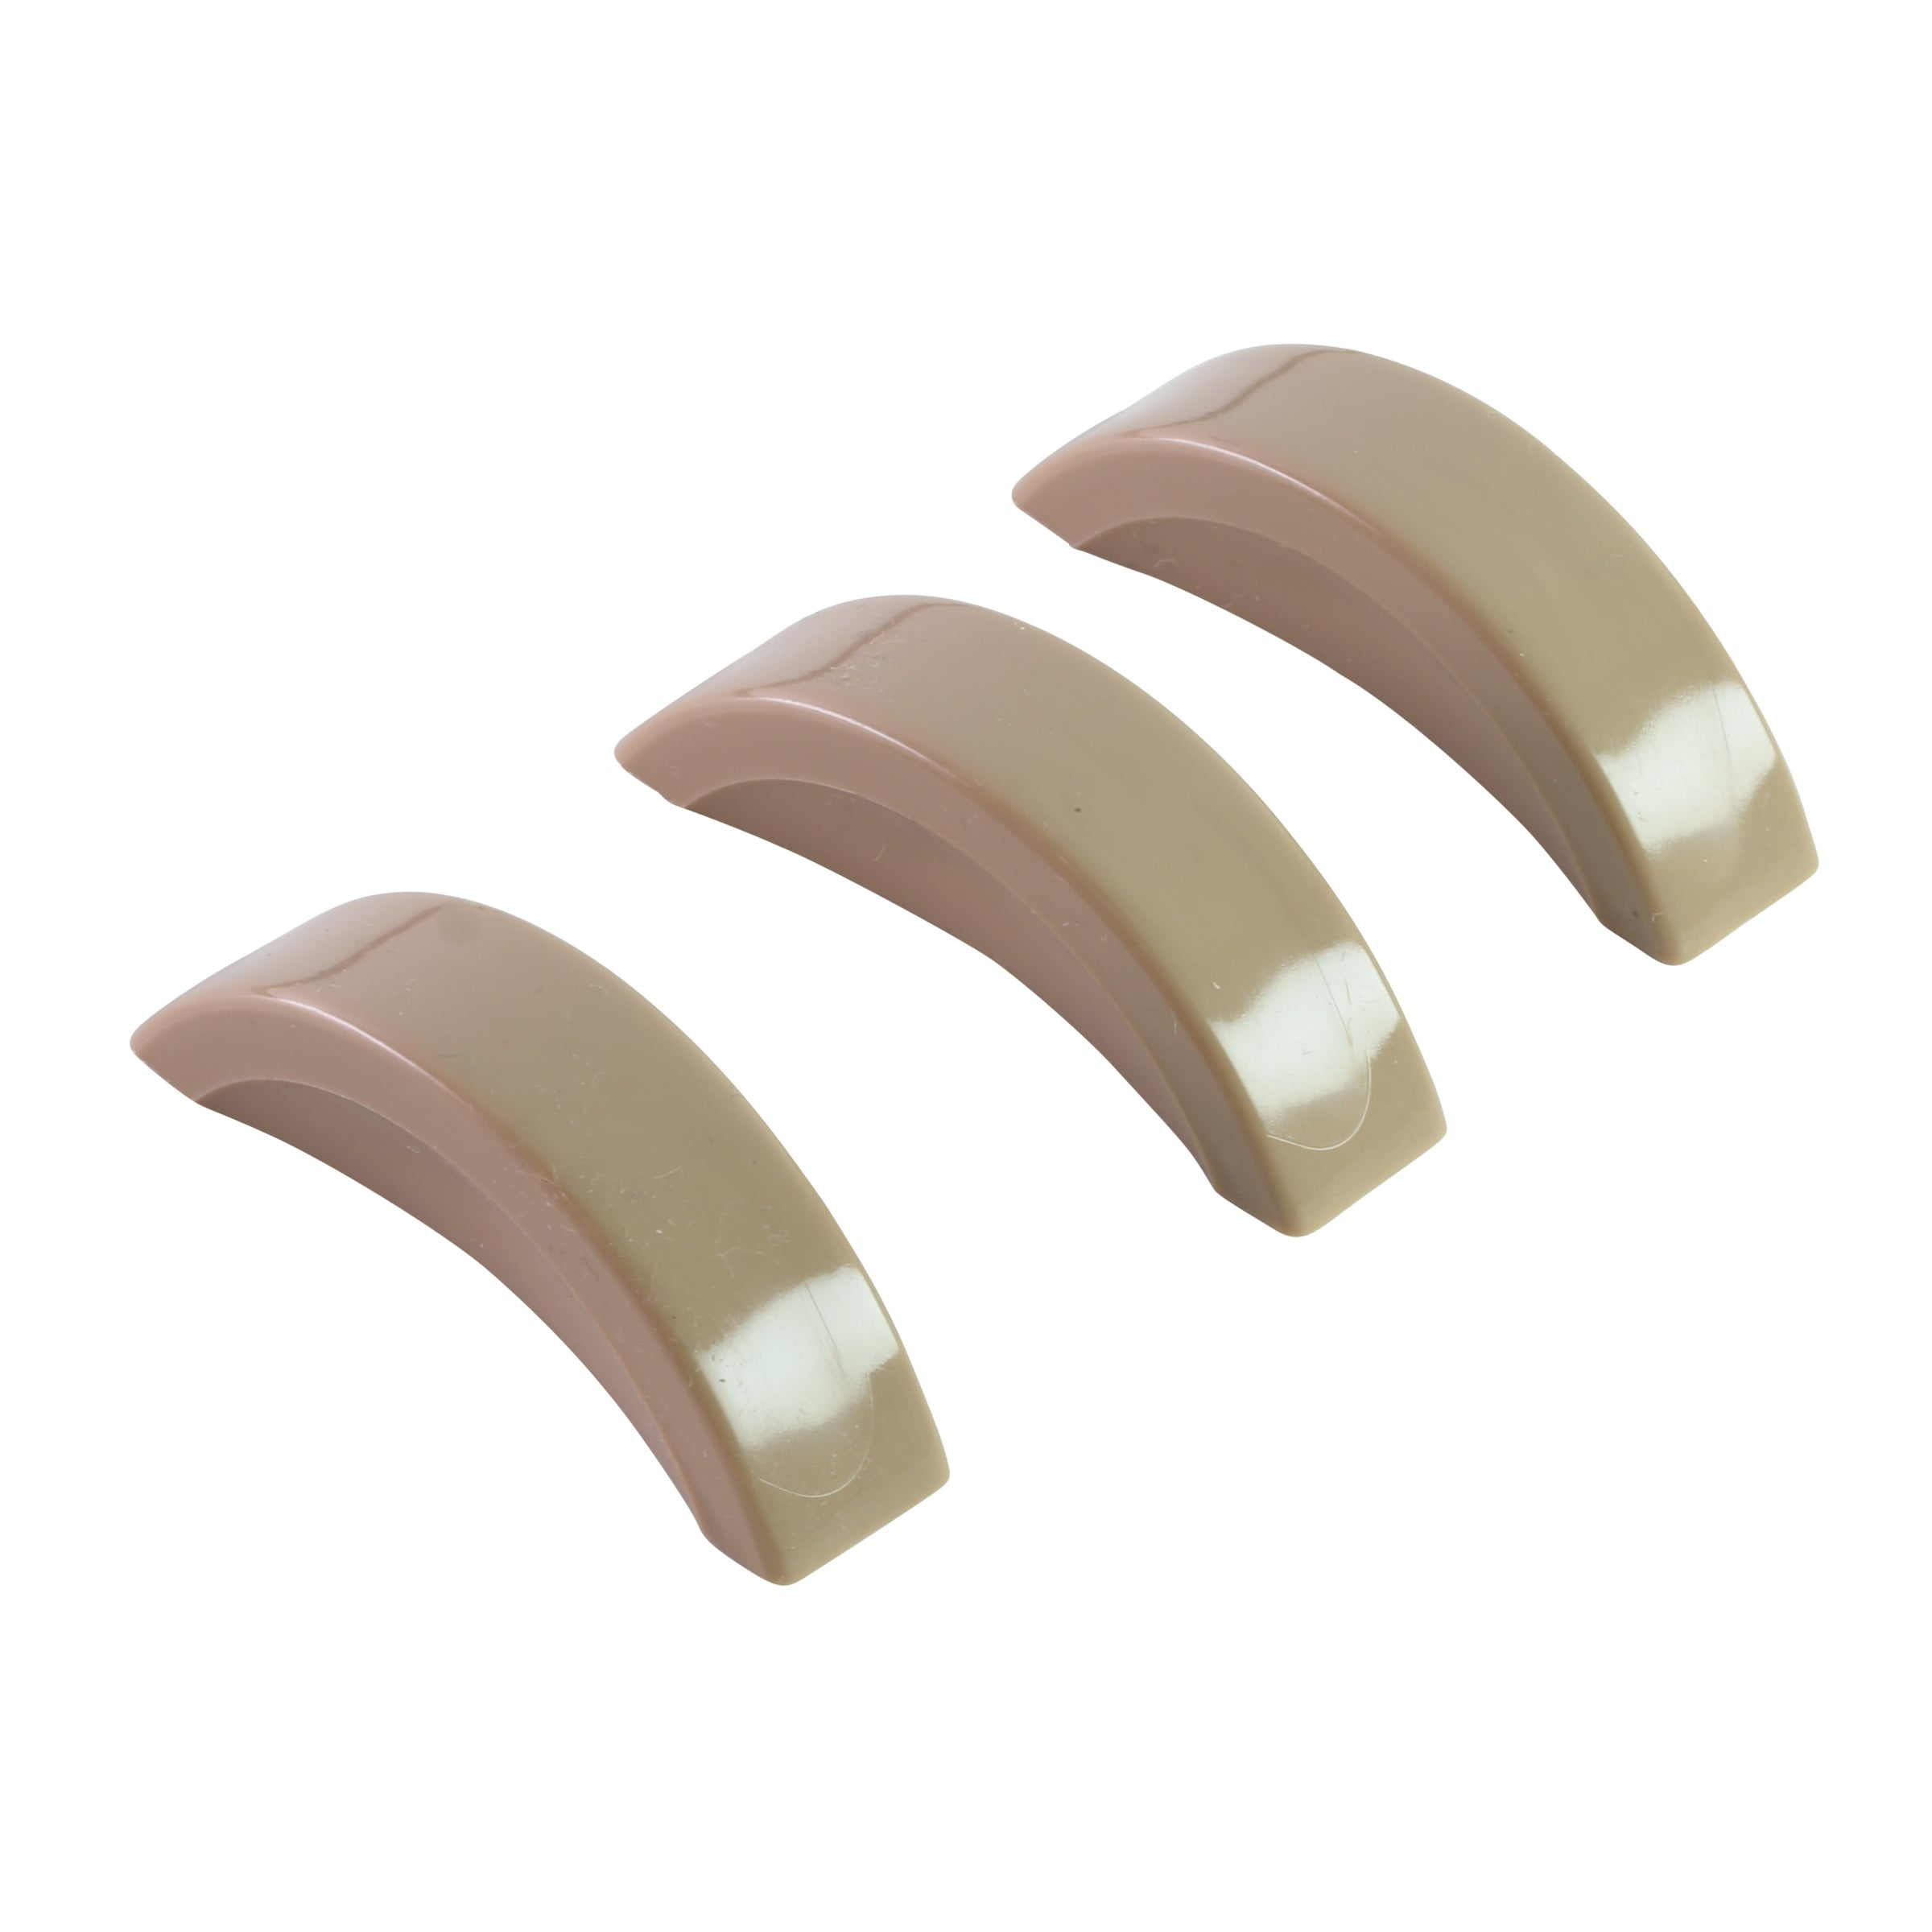 Heater Door Knobs (Tan) • 1941-48 Ford